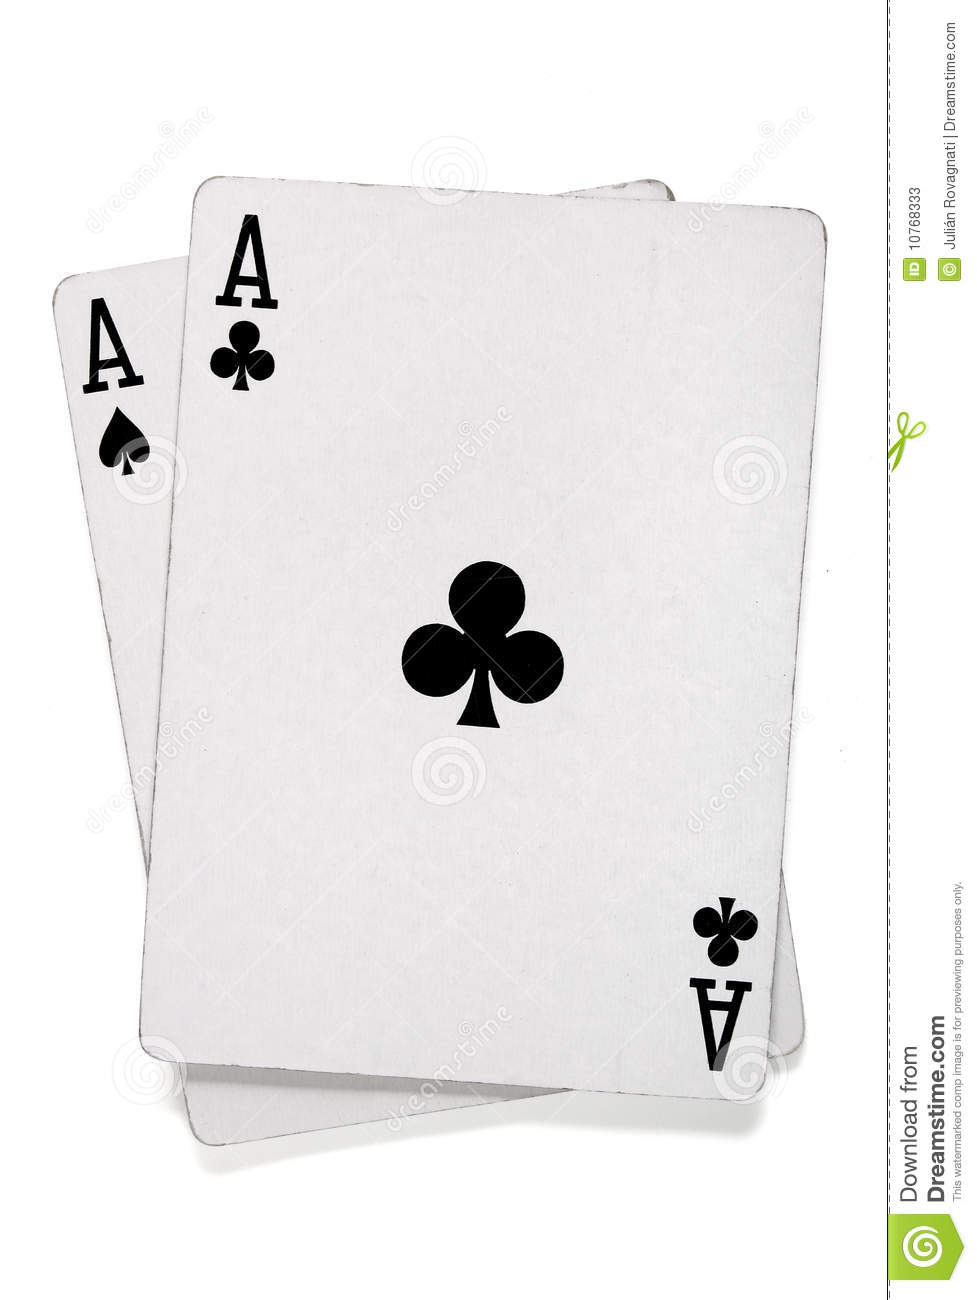 Pair Of Aces With Poker Cards Stock Image - Image of games